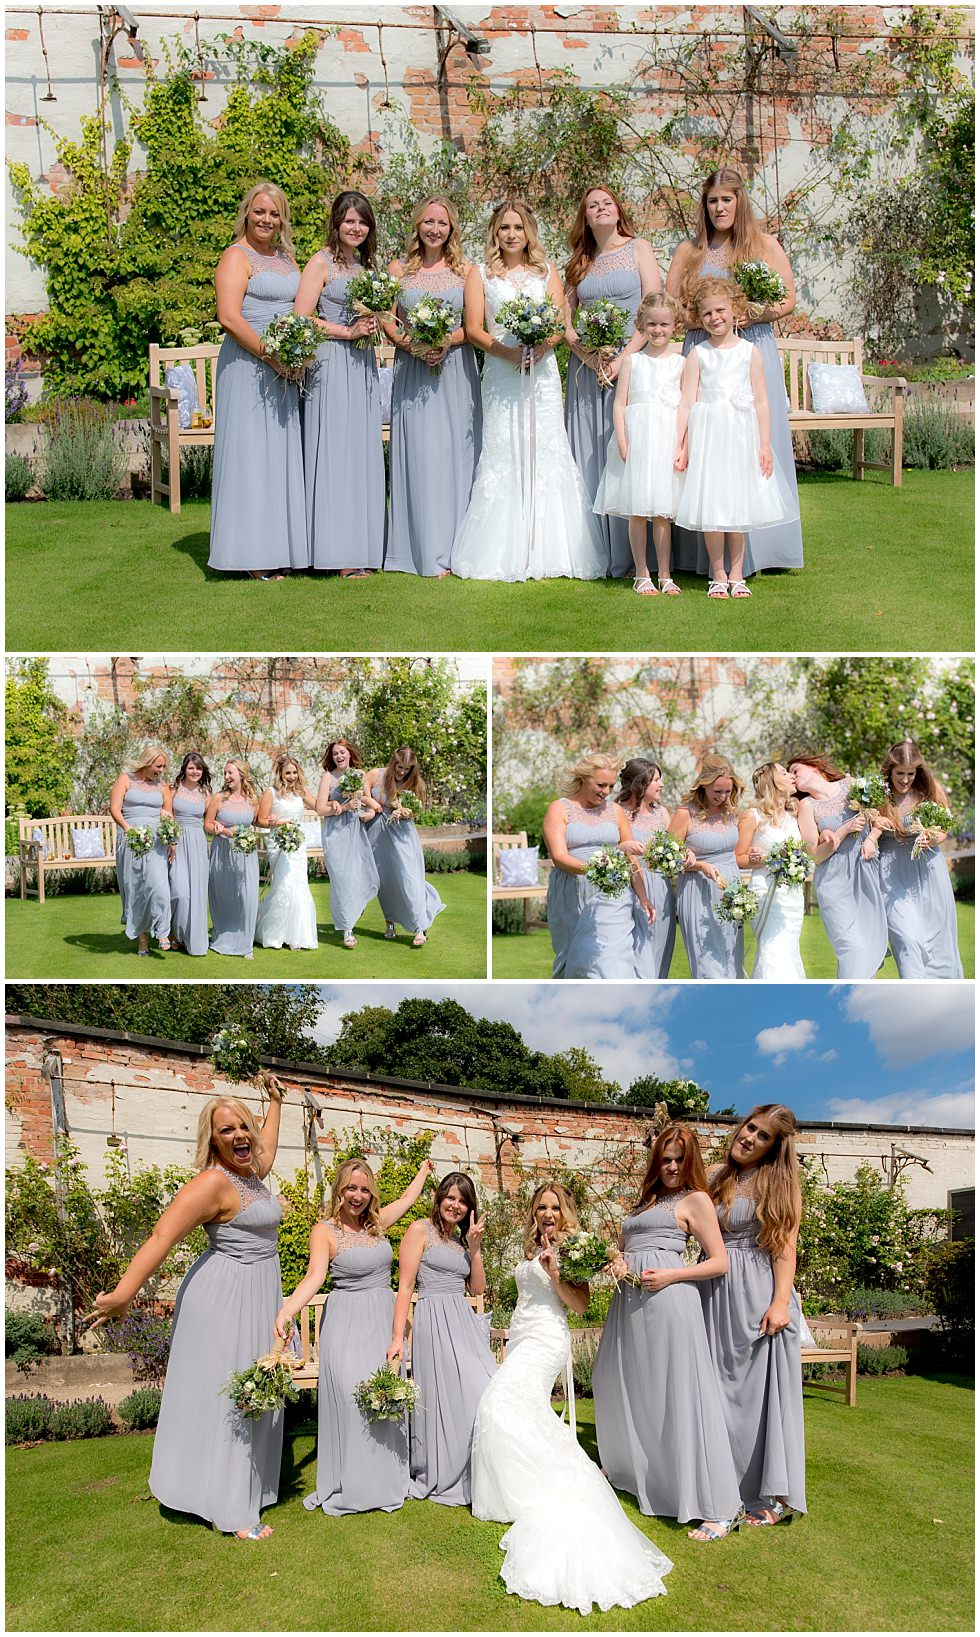 Wedding at Walled Gardens Beeston 011